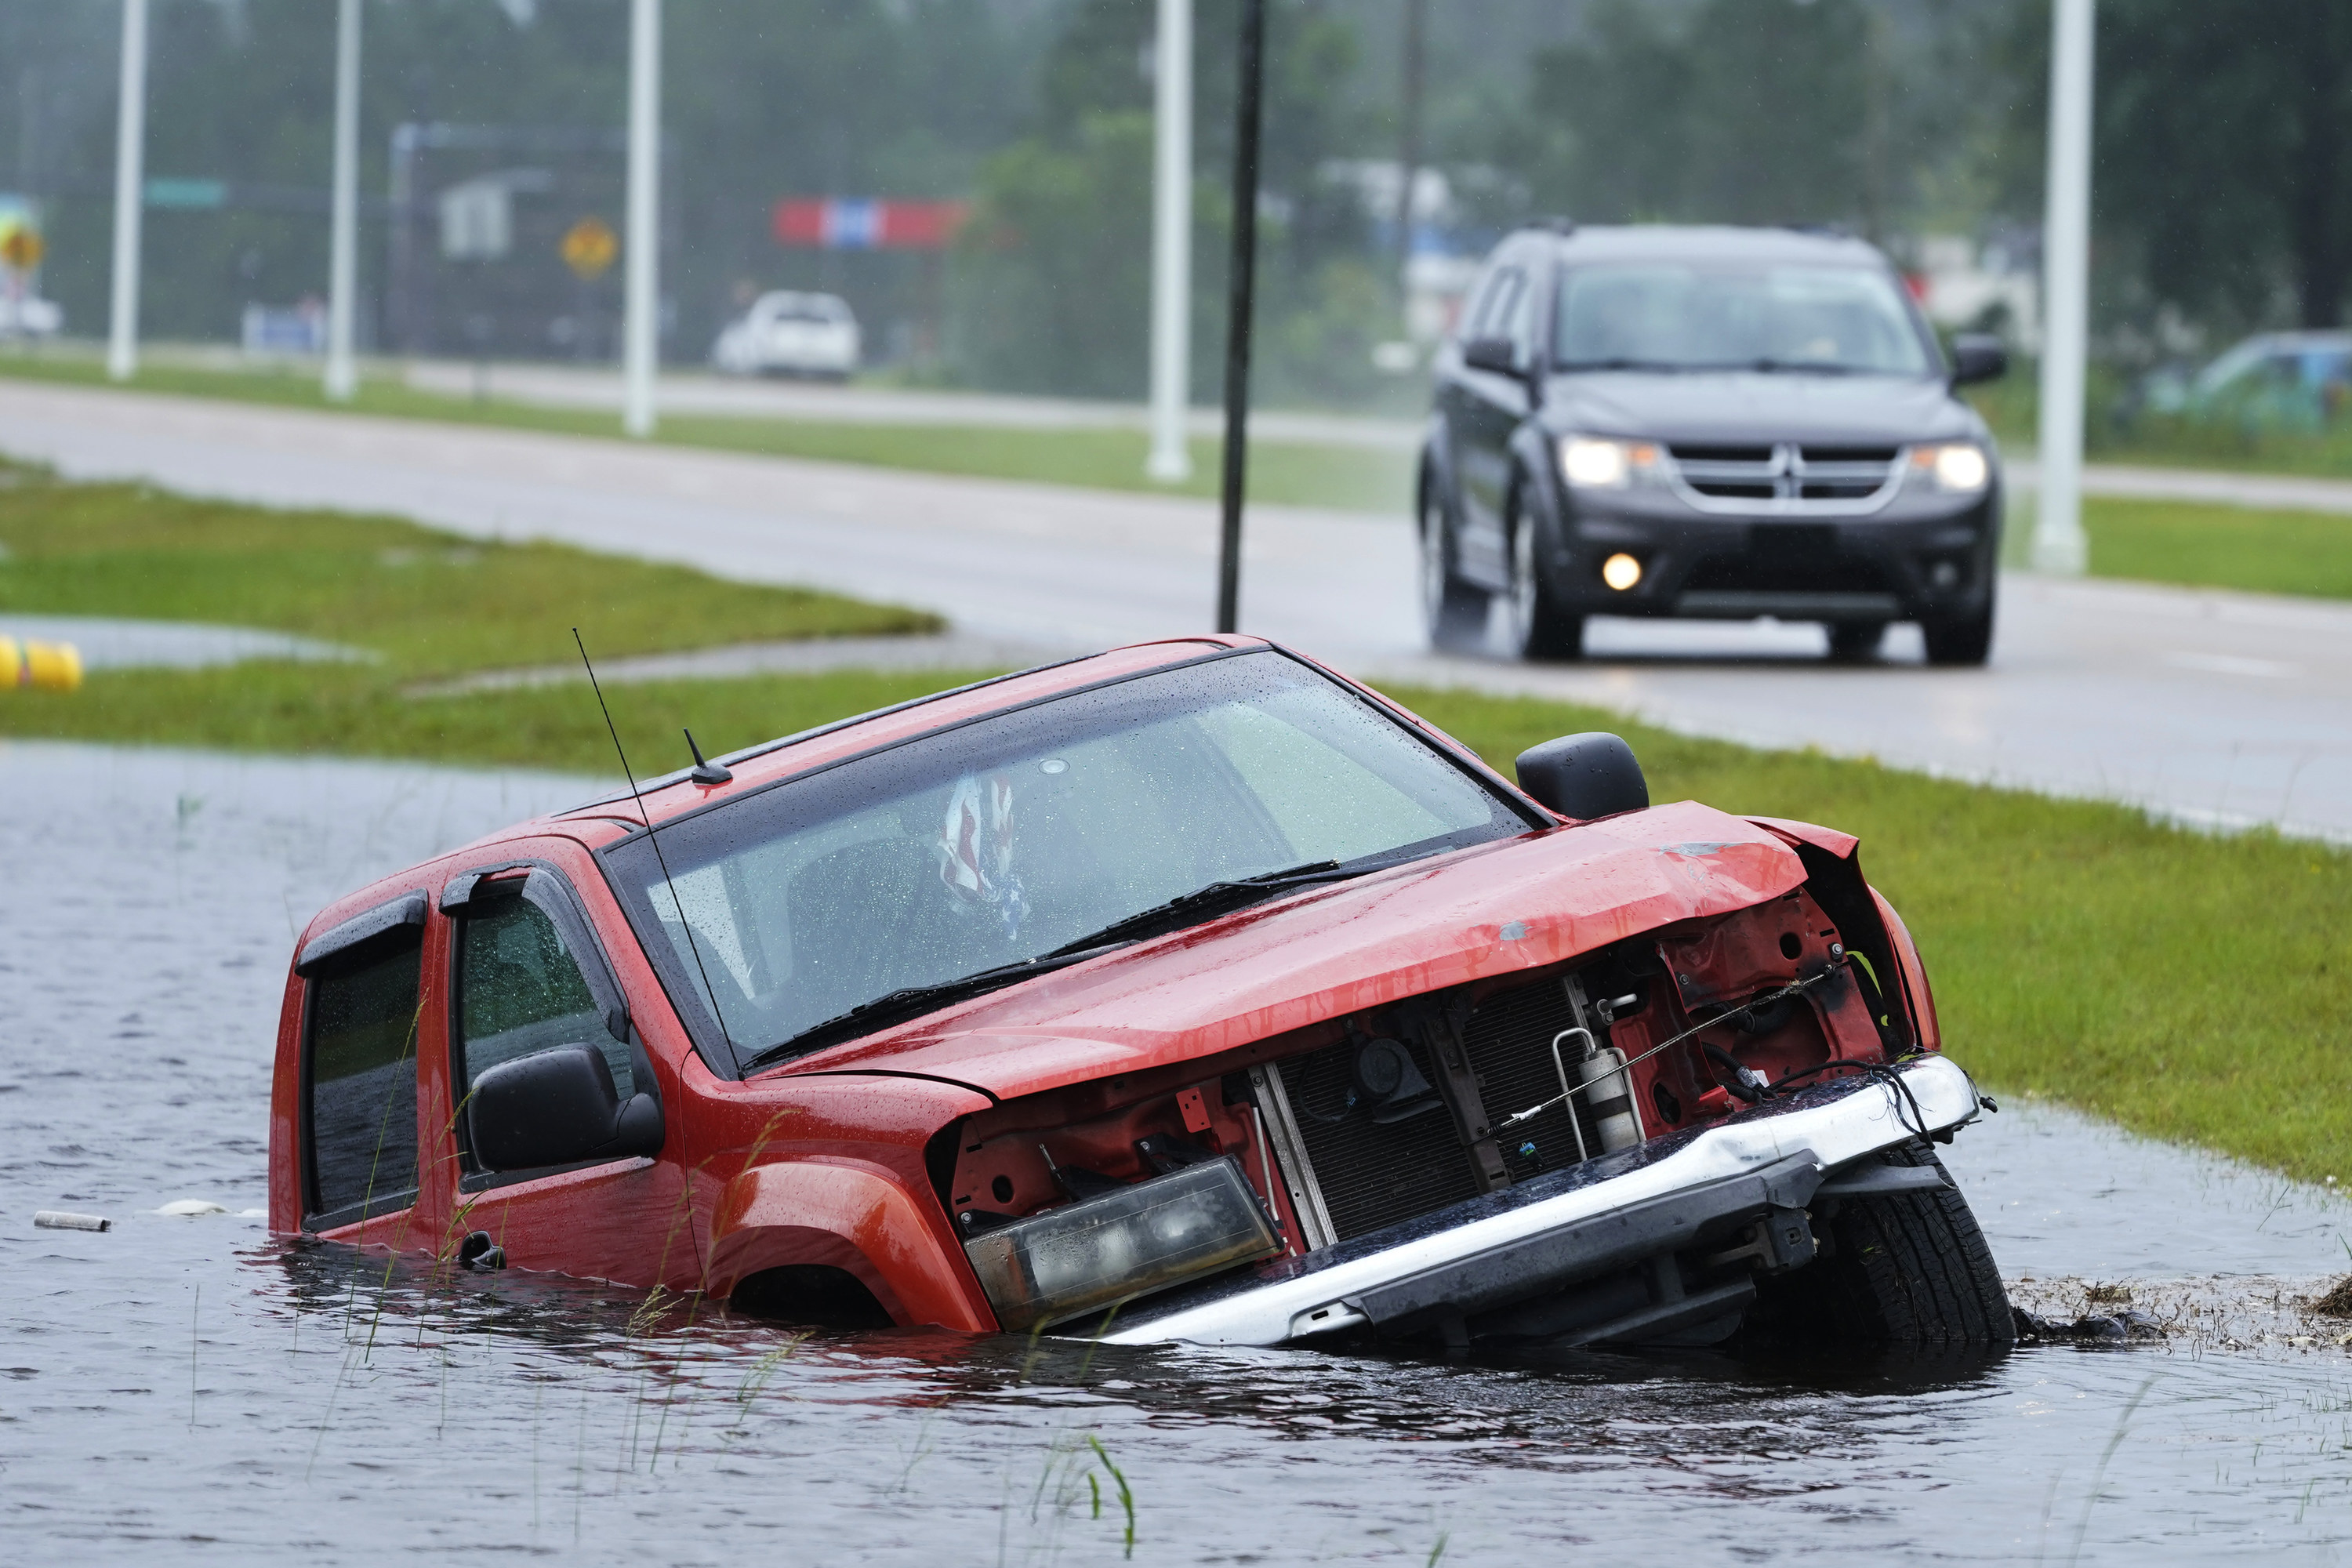 An abandoned vehicle is half submerged in a ditch next to a near-flooded highway